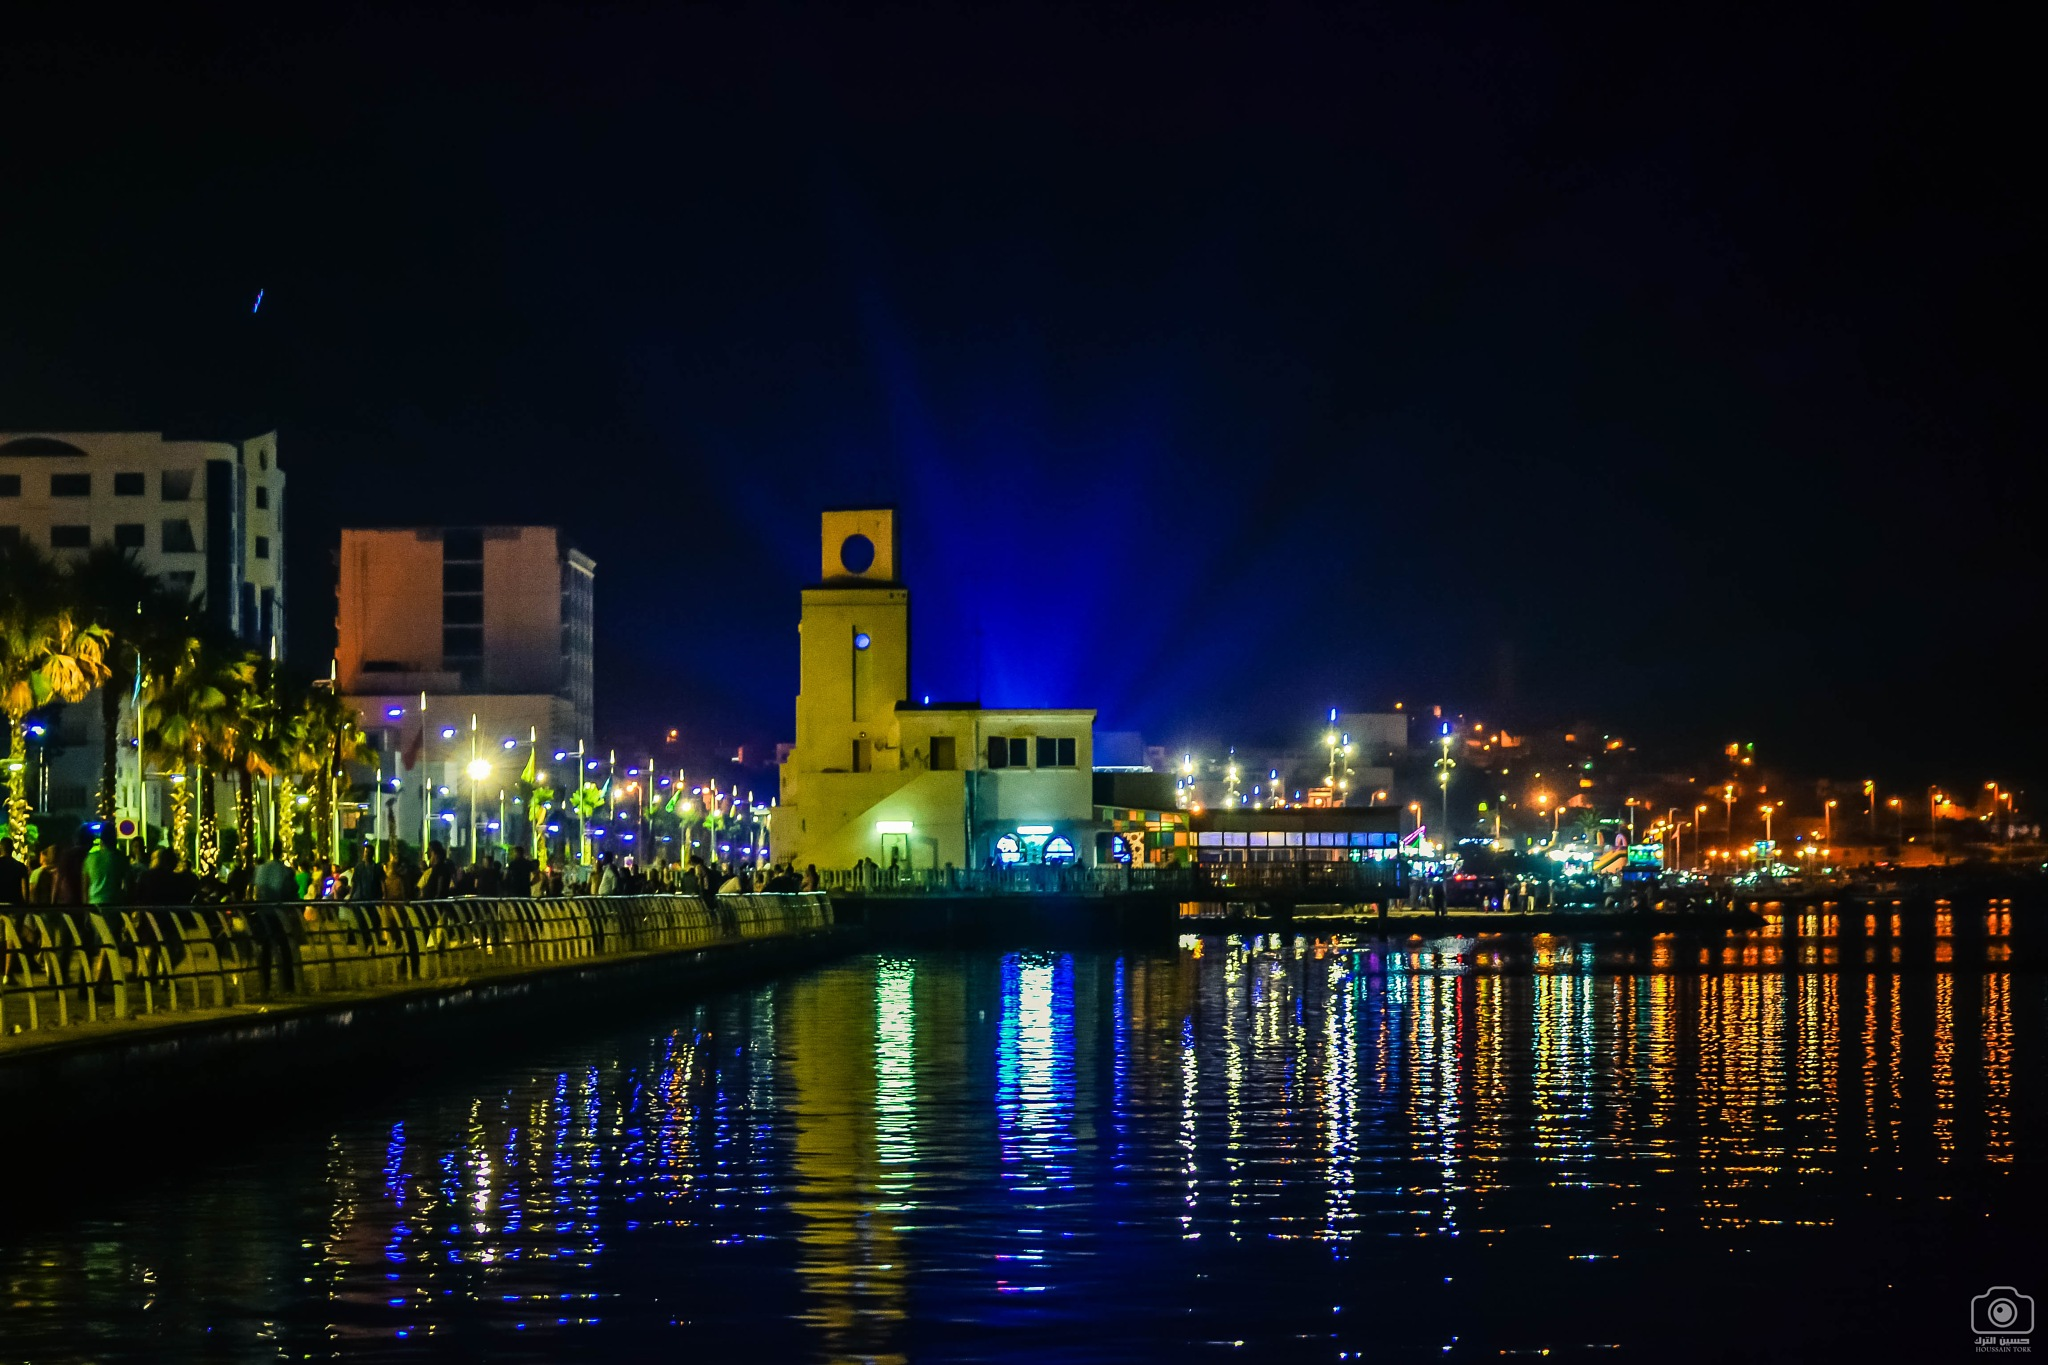 Corniche of Nador at night by Houssaintork